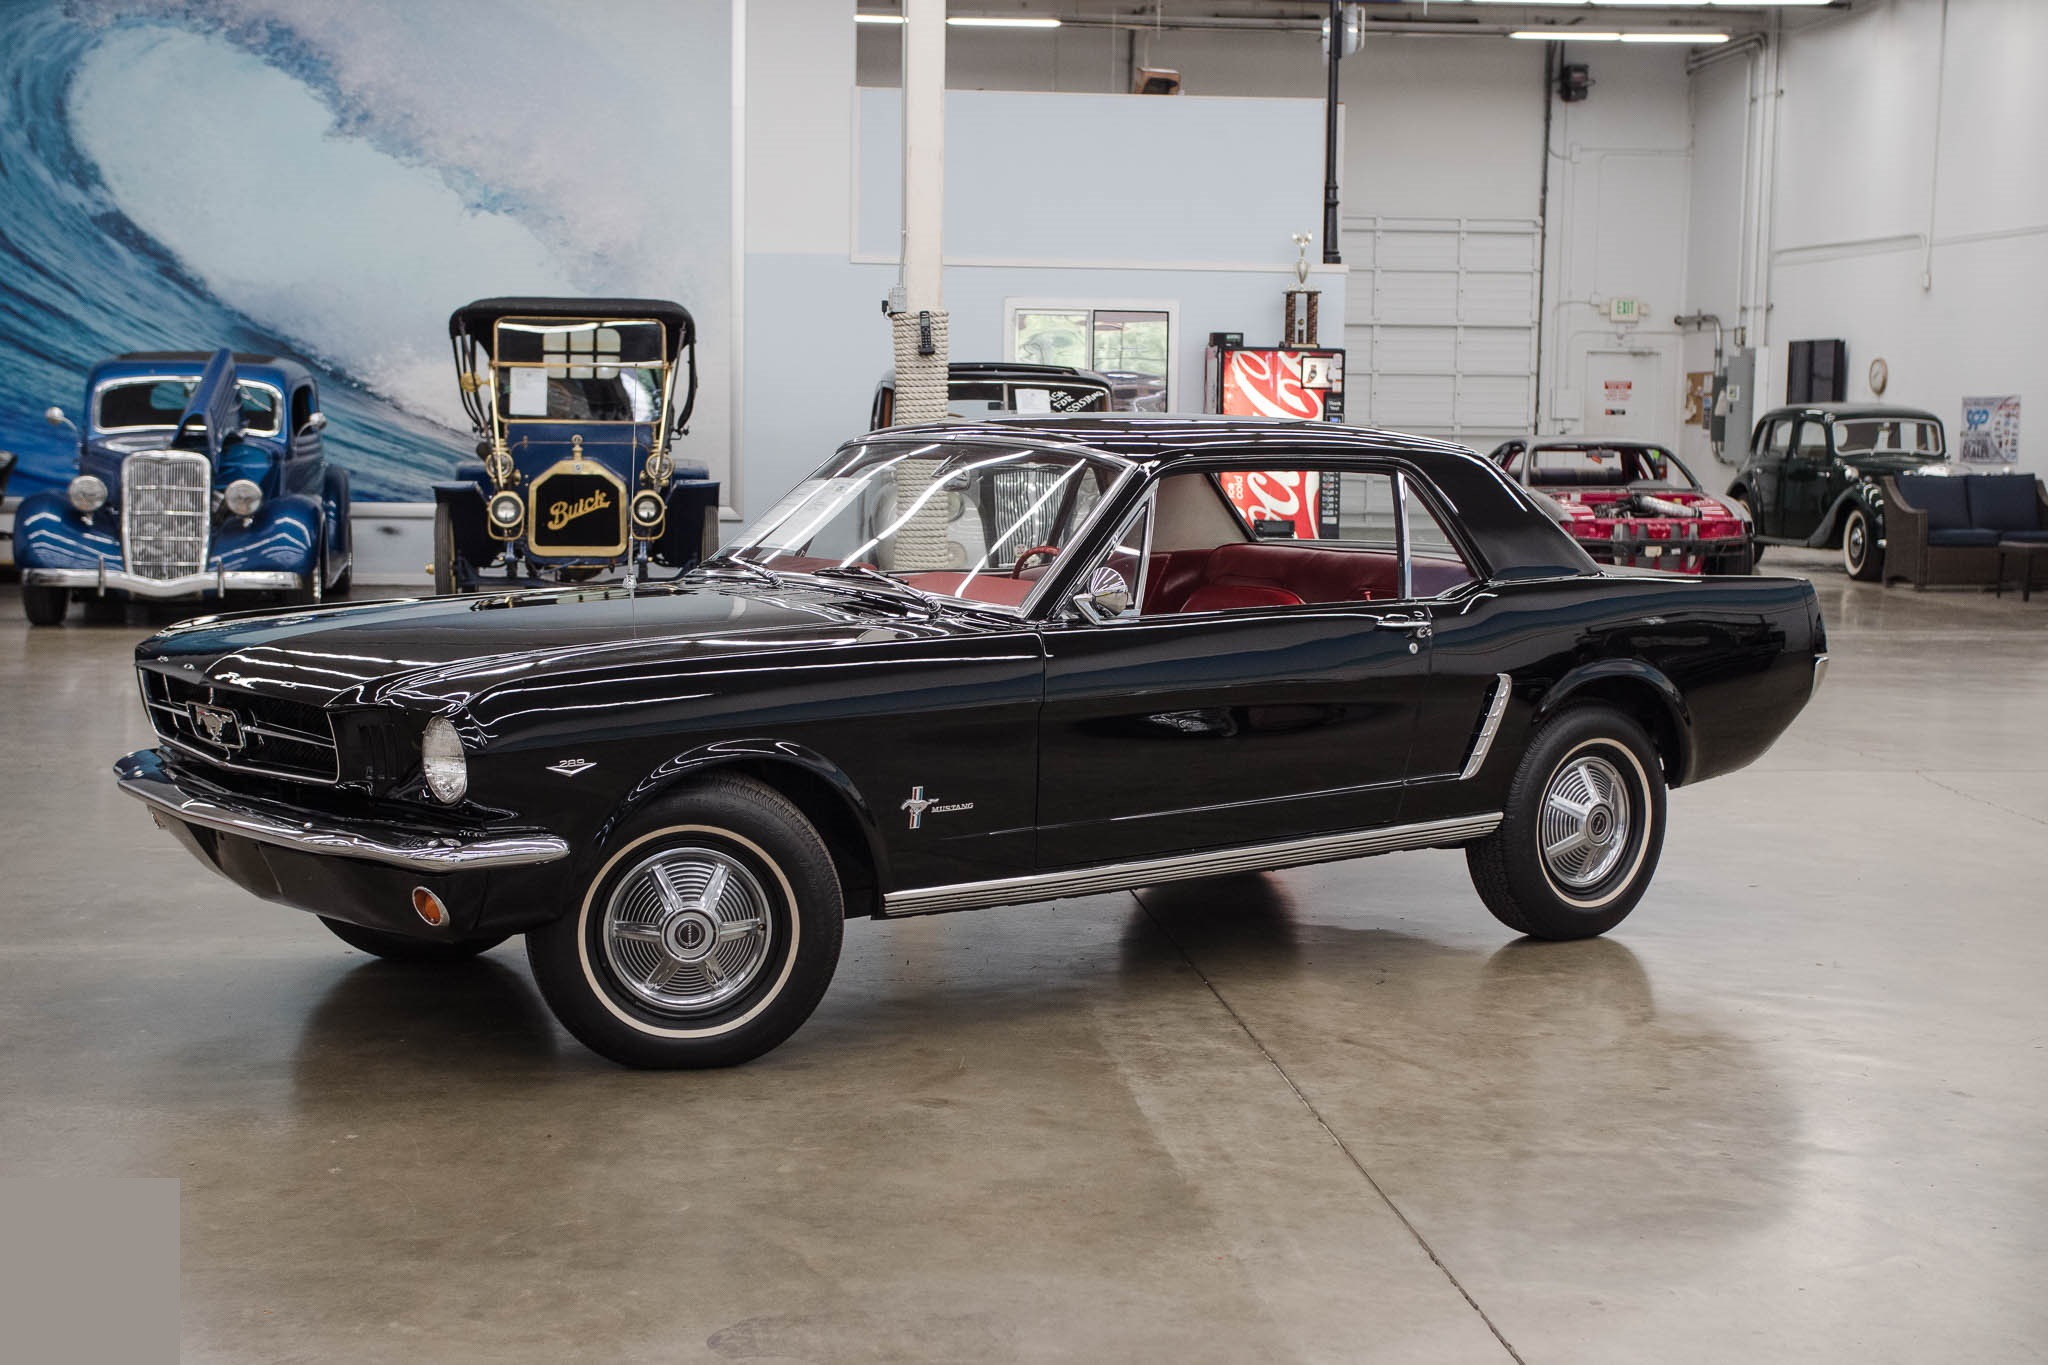 Mustang coupe 289ci V8 Code D automatique 1964 1/233 554 €